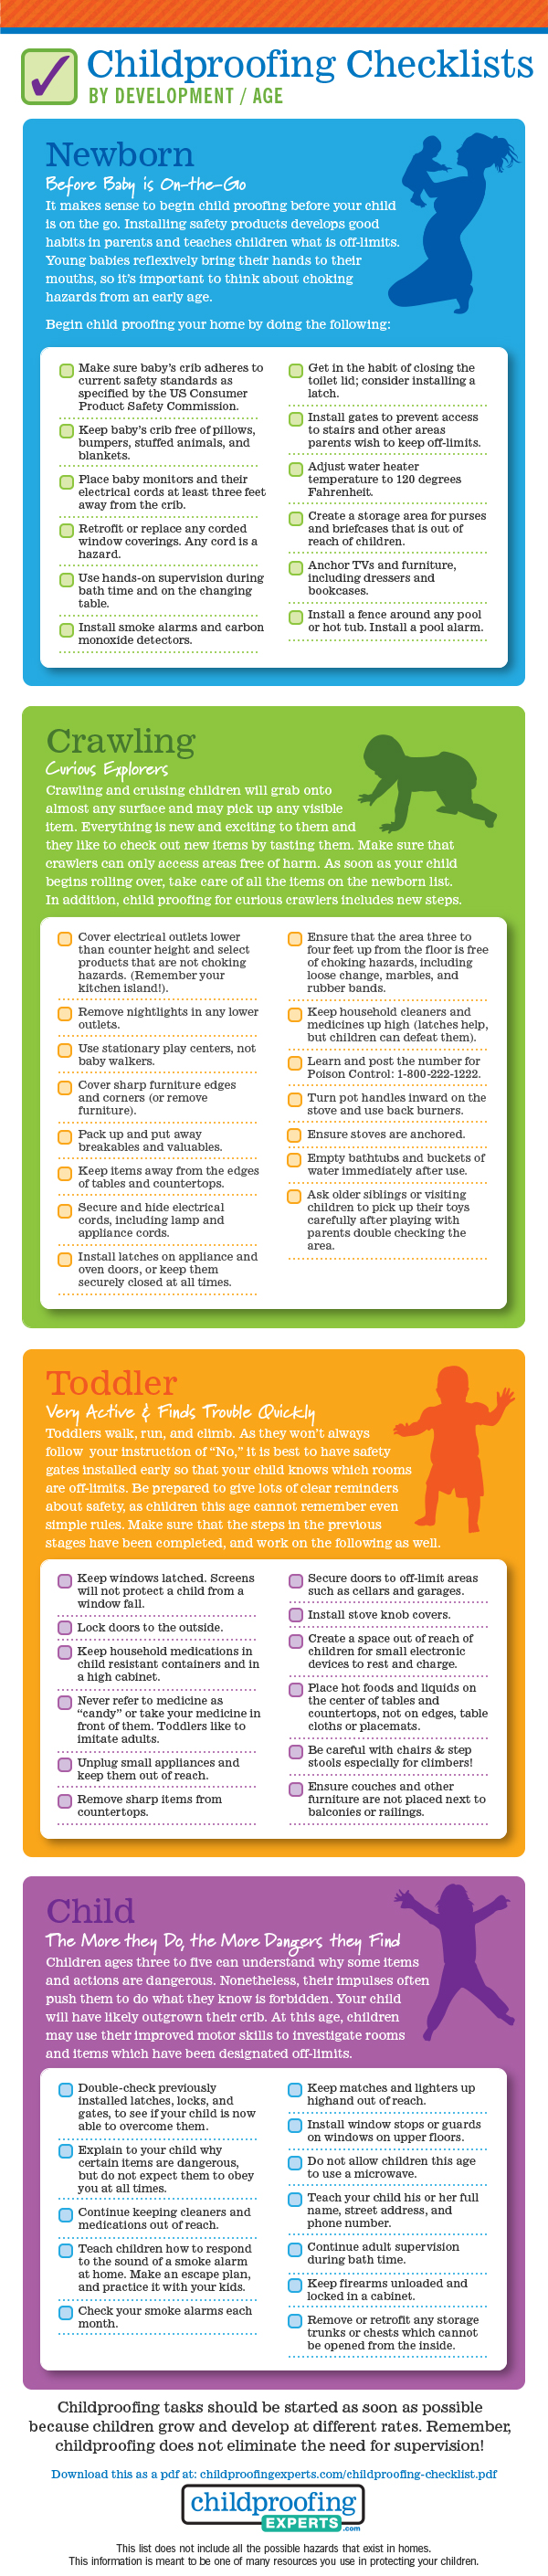 childproofing-checklist